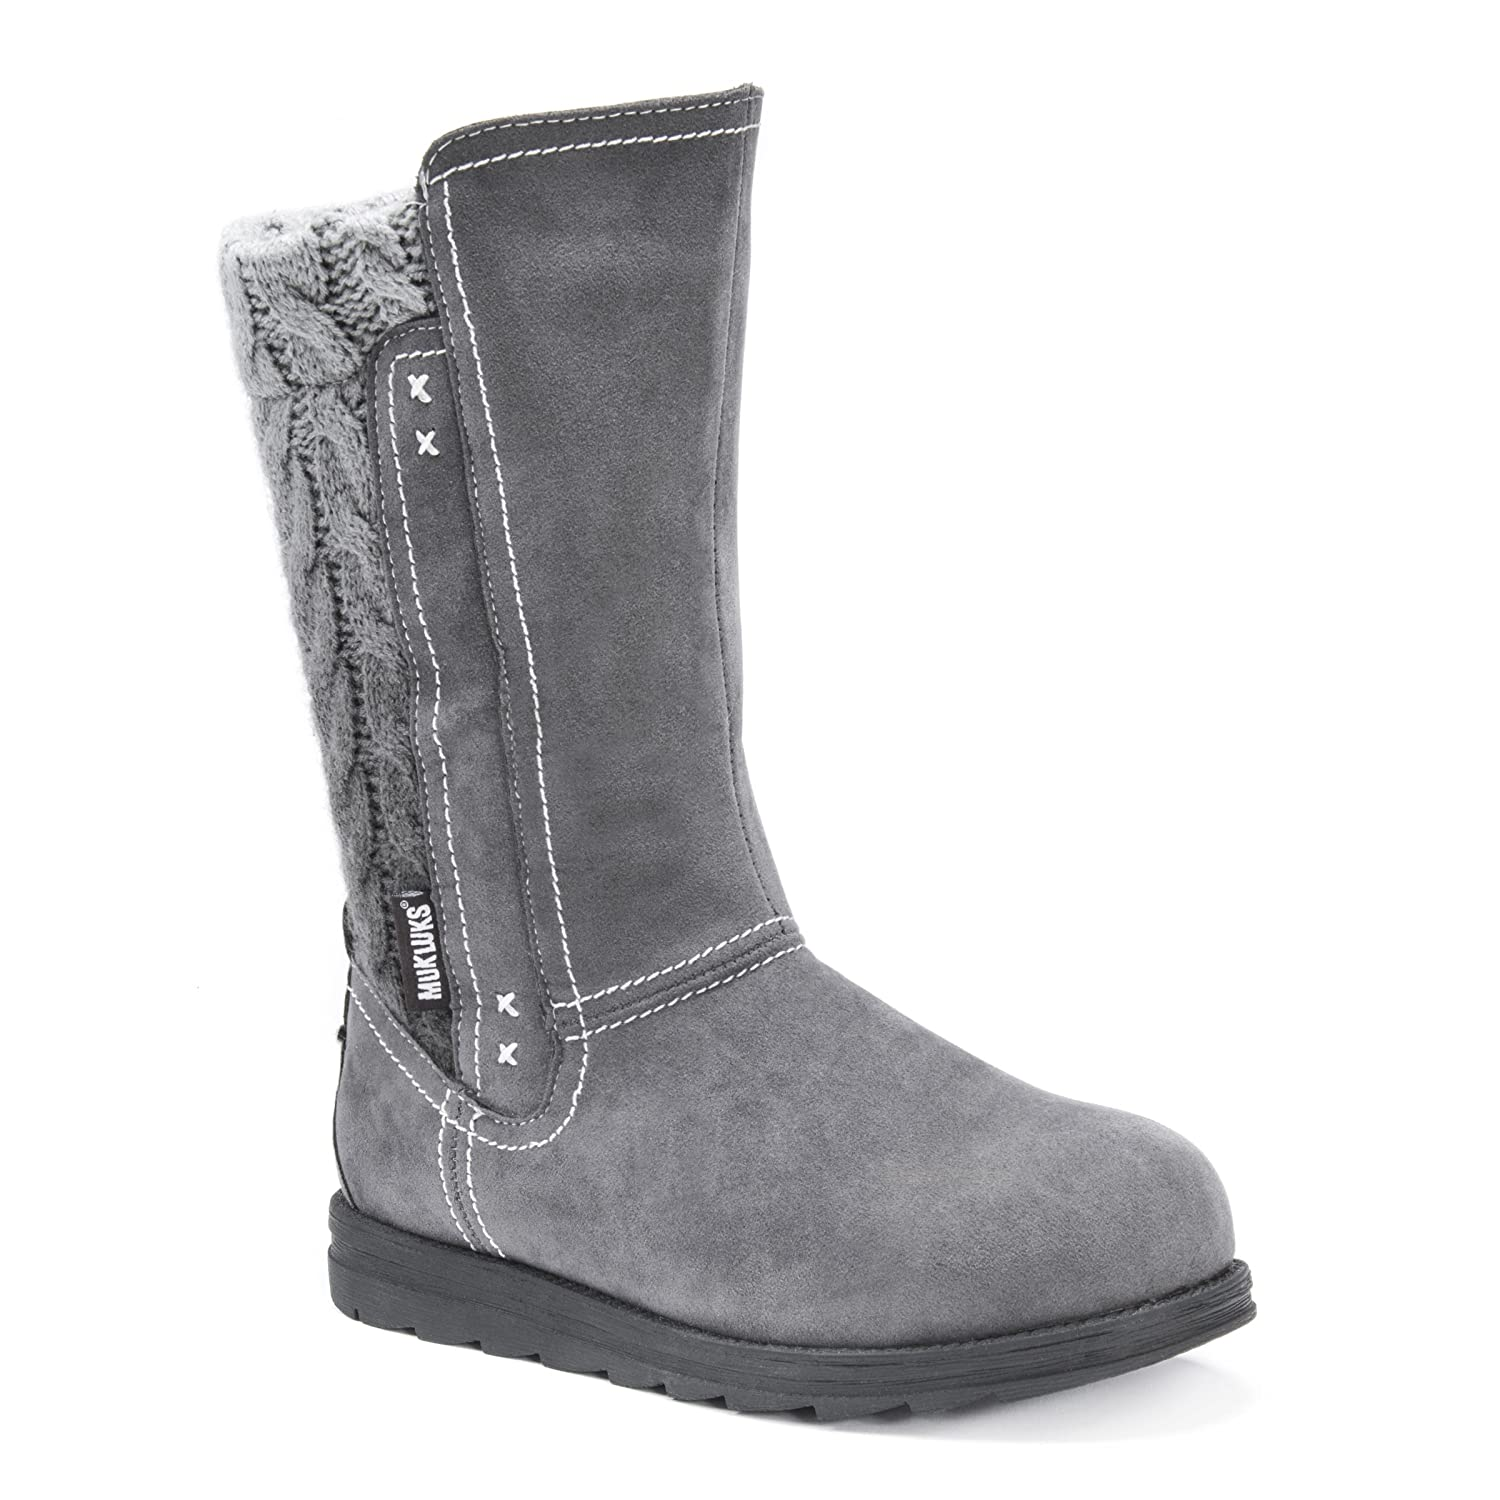 MUK LUKS Women's Stacy Fashion Boot B072K6RK7H 6 B(M) US|Grey